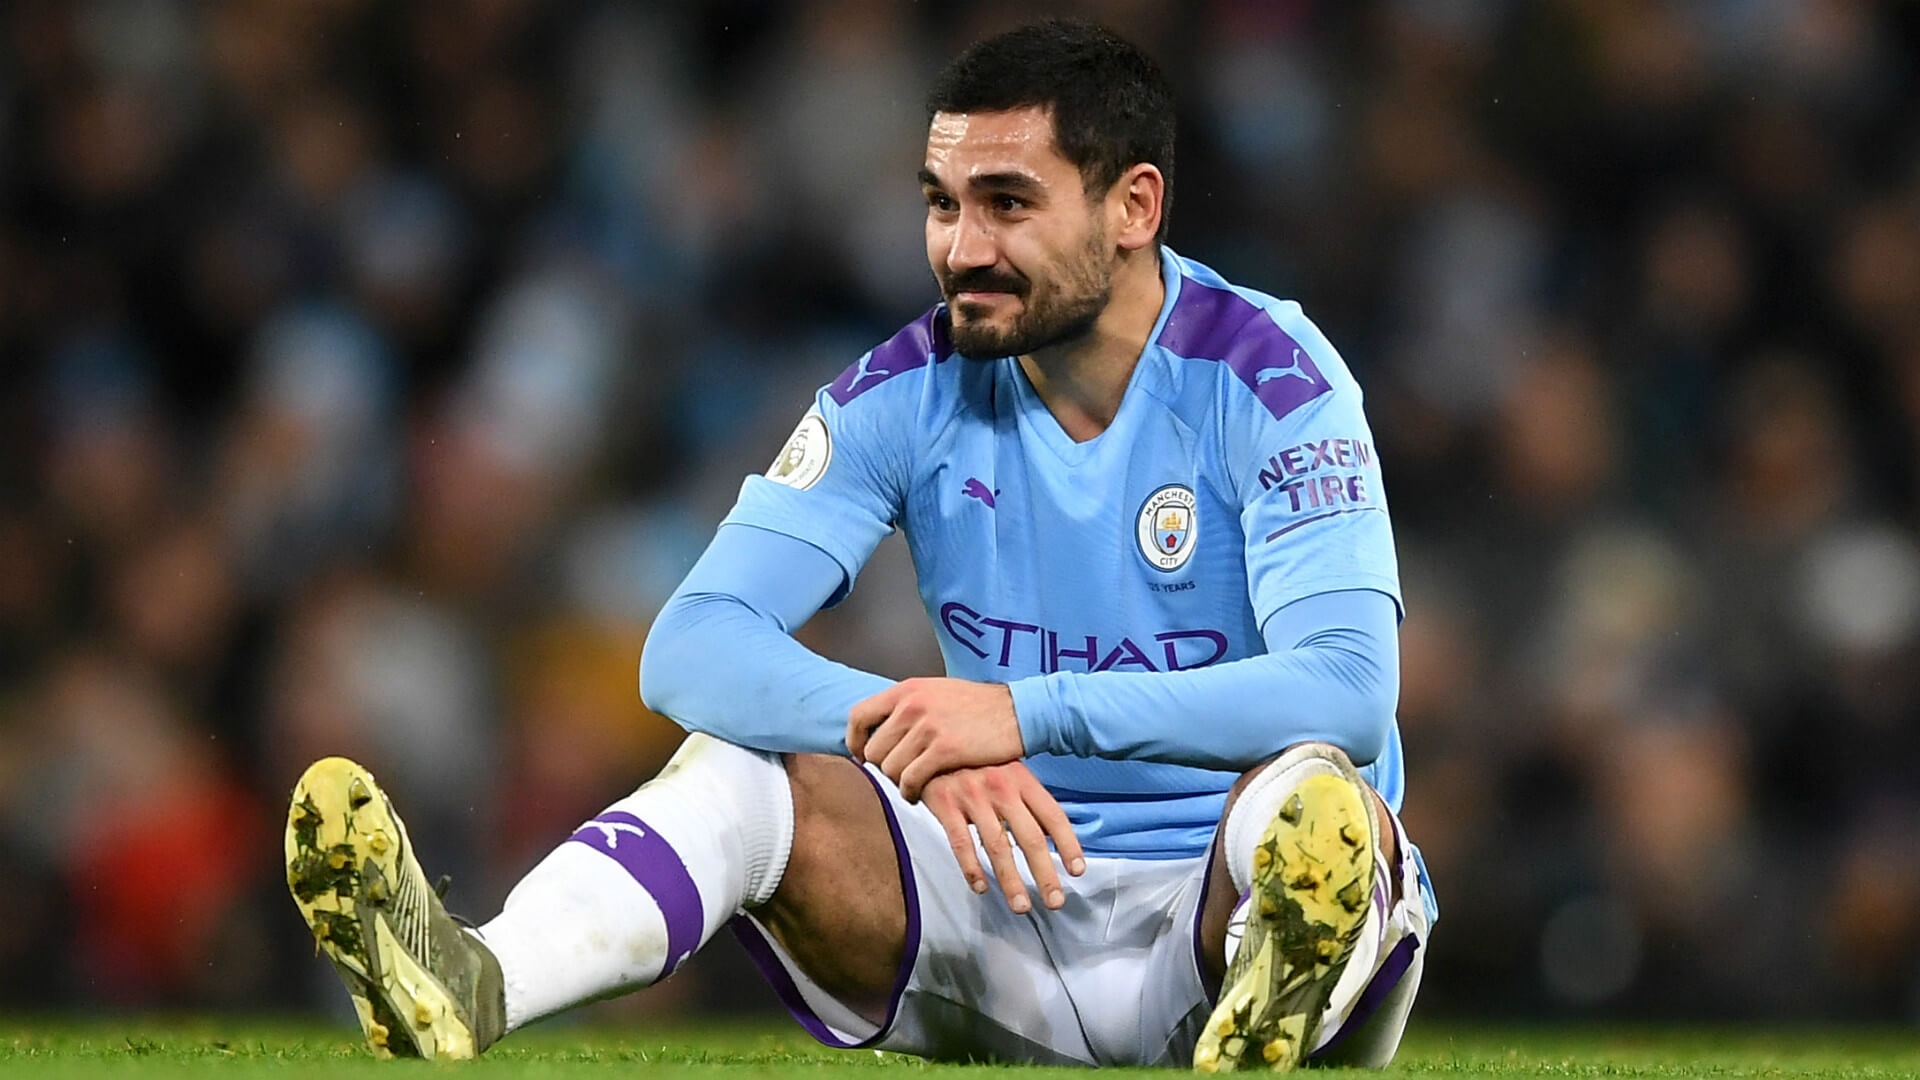 Man City midfielder Ilkay Gundogan found COVID-19 positive ahead of season opener